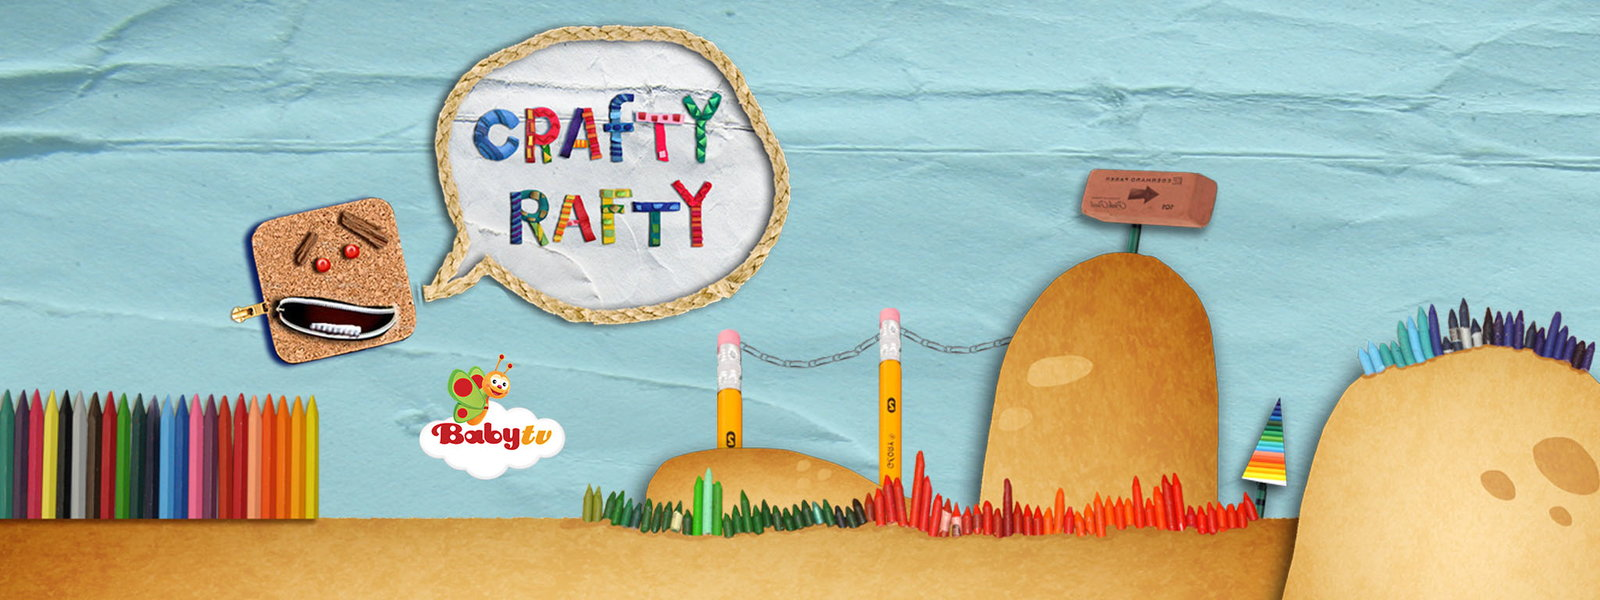 Crafty Watch Crafty Rafty Online At Hulu